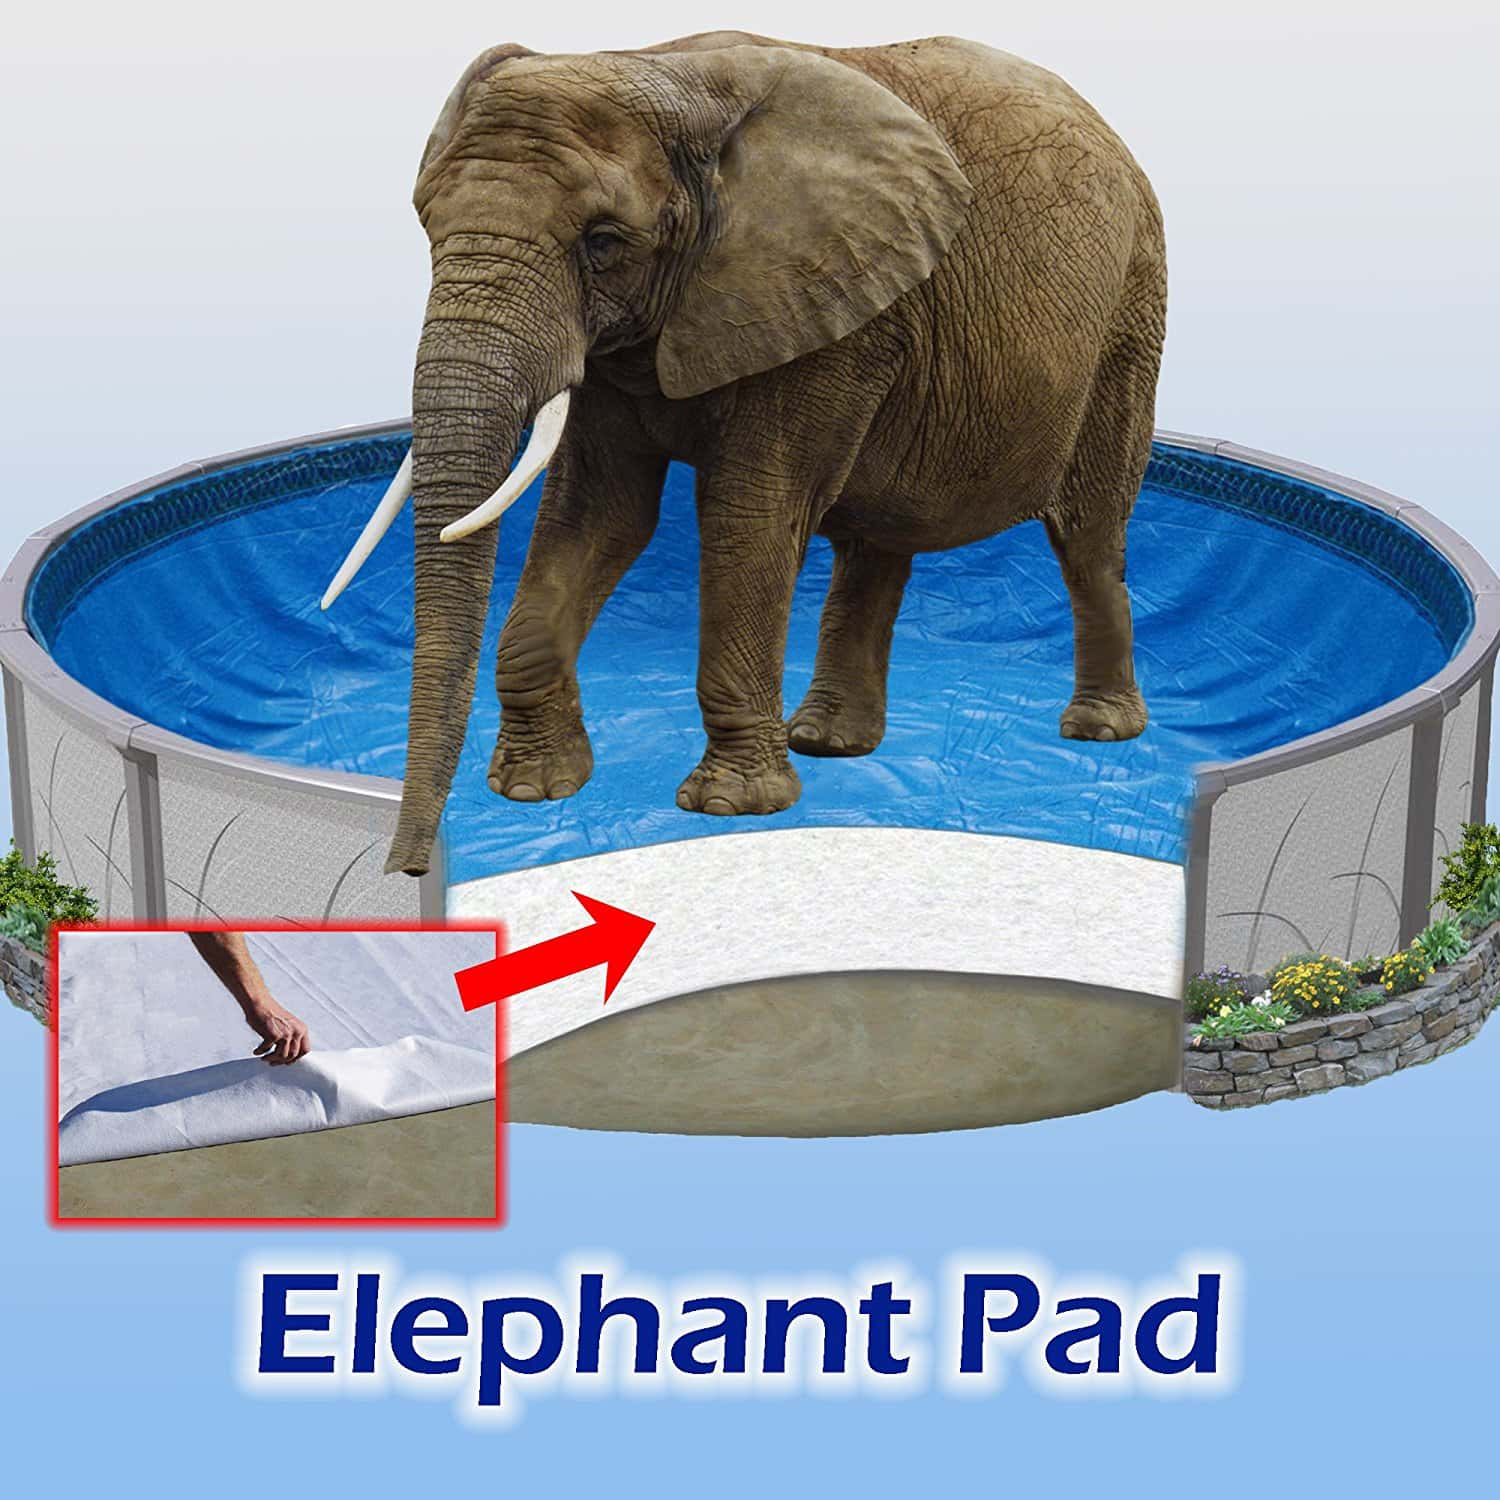 Quality Pool Products 24 ft Round Pool Liner Pad, Elephant Guard Armor Shield Padding